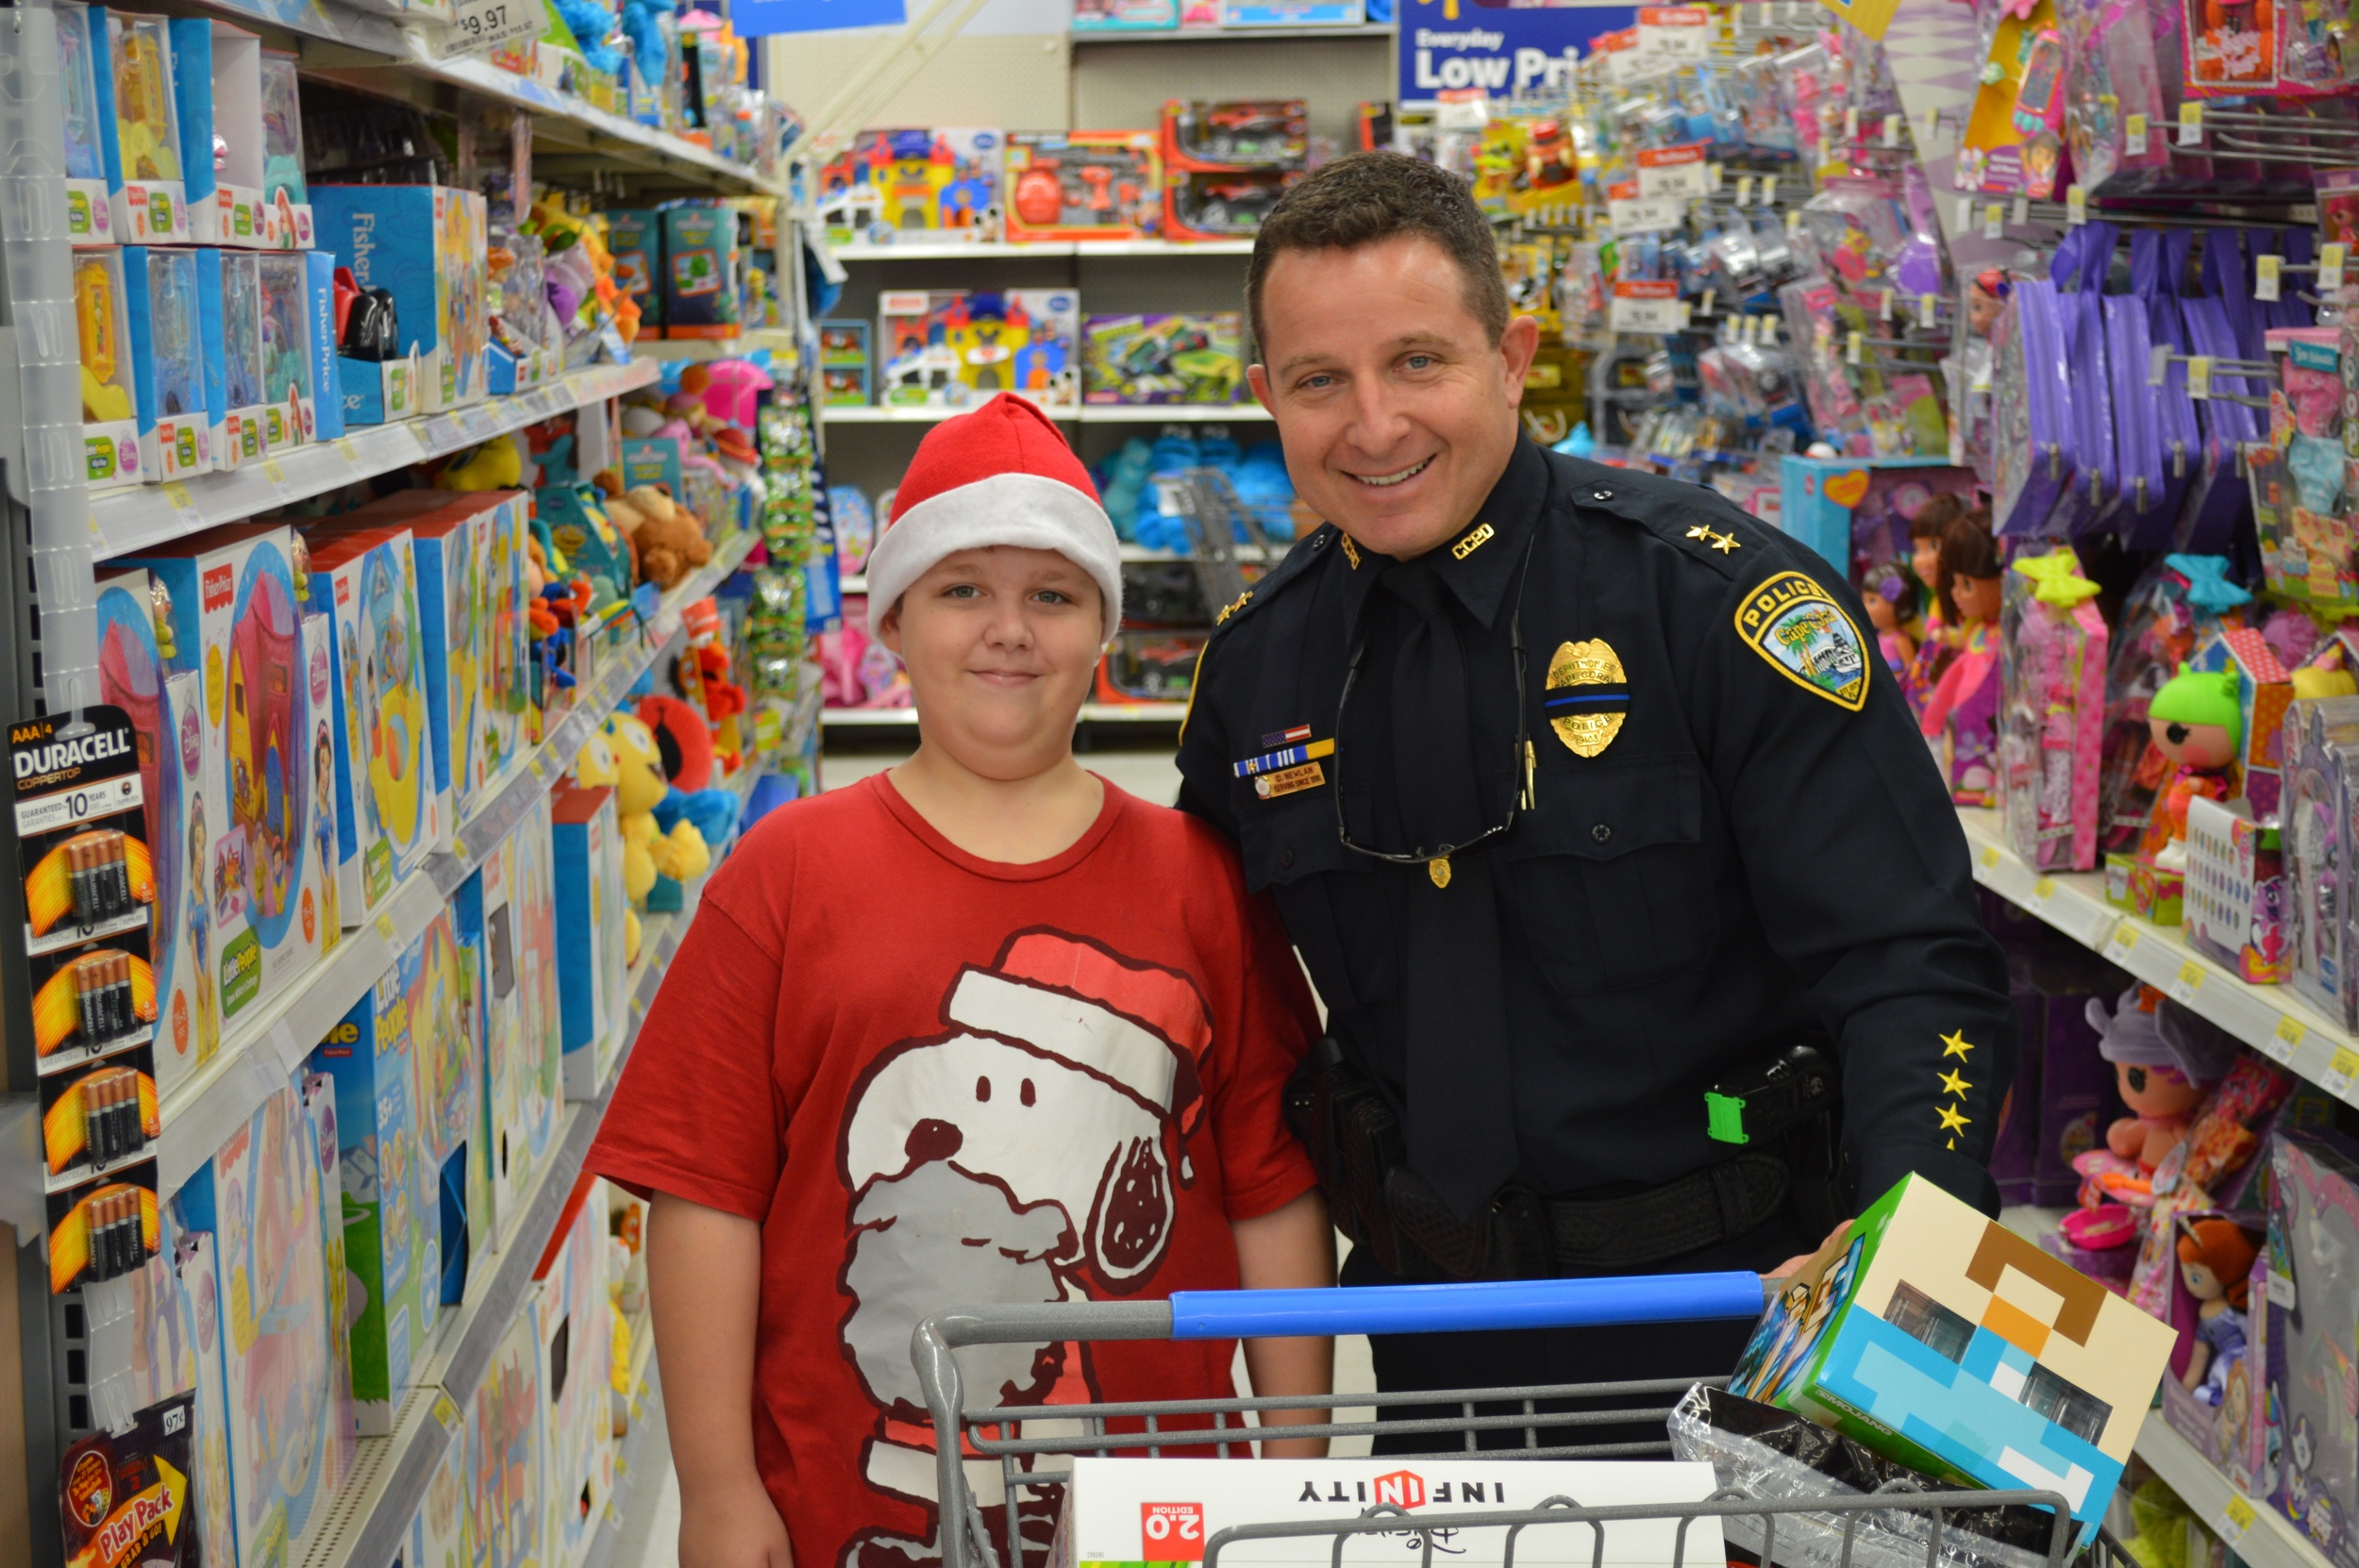 """PHOTO: December 21, 2015 will mark the Cape Coral Police Department's 13th annual """"Shop With a Cop."""". (Photo Courtesy of Cape Coral Police Department)"""